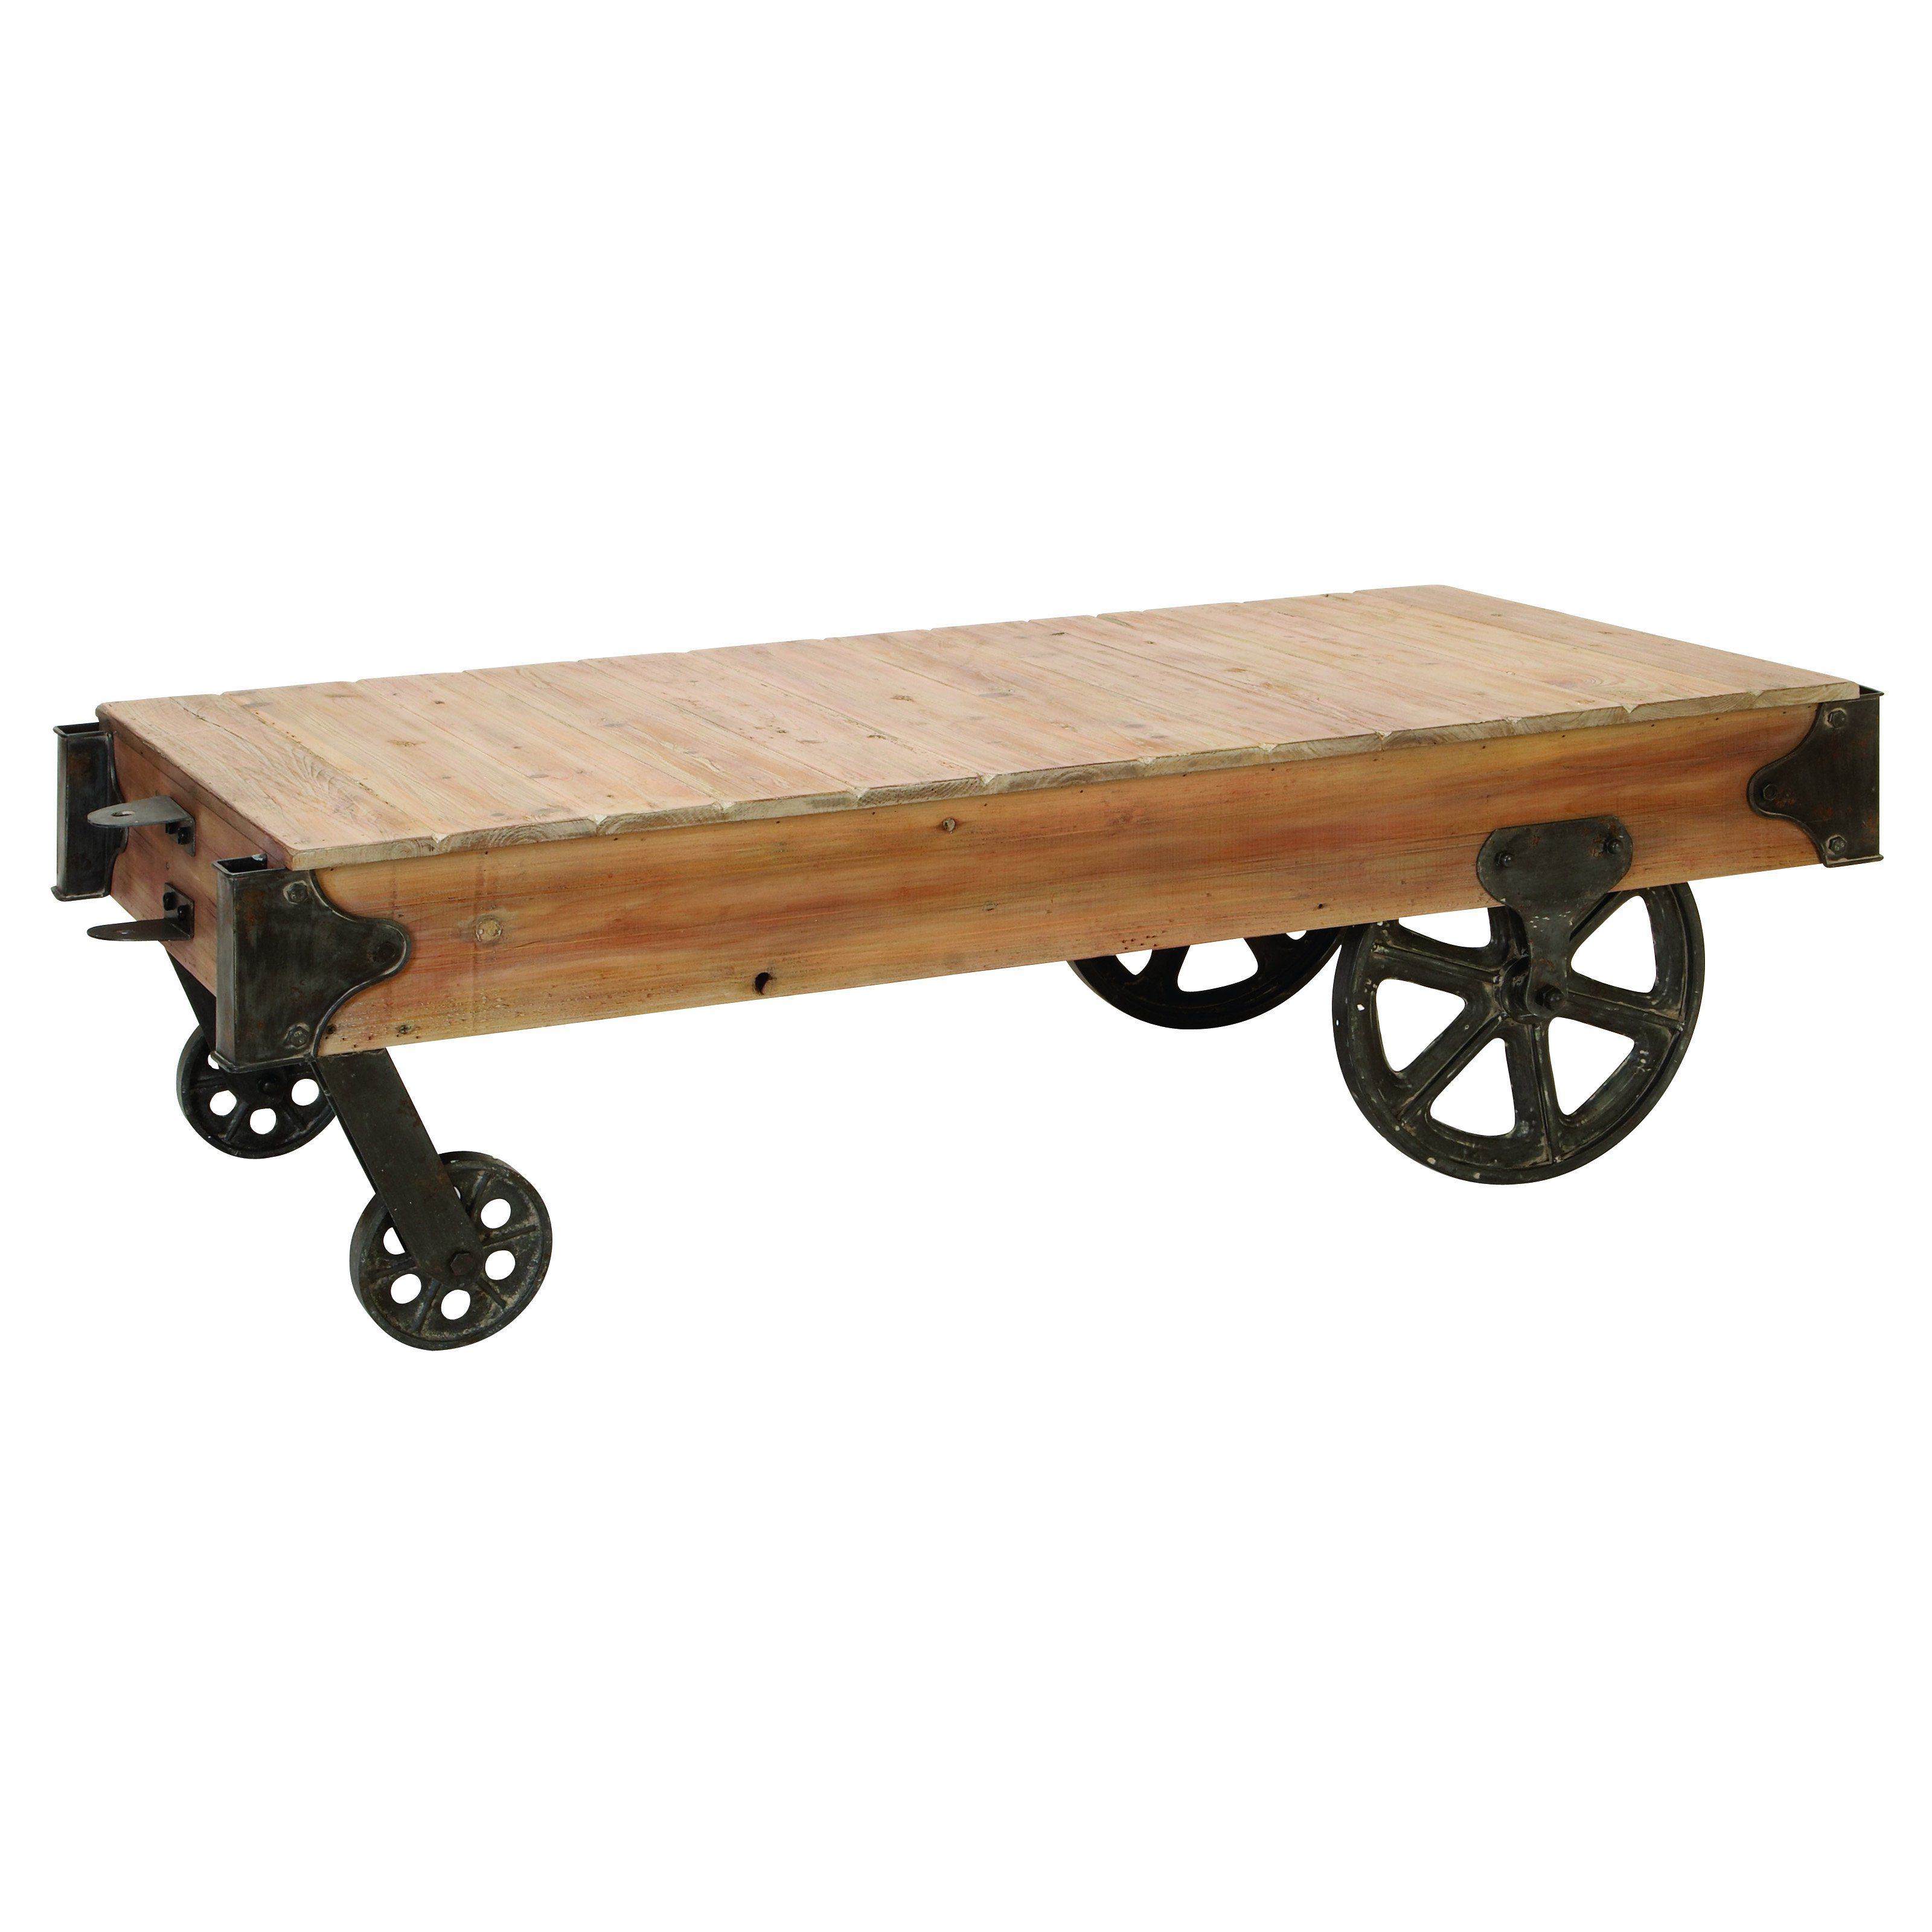 Benzara Wood Cart Coffee Table   Inspired By Pieces In An Industrial  Warehouse, This Benzara